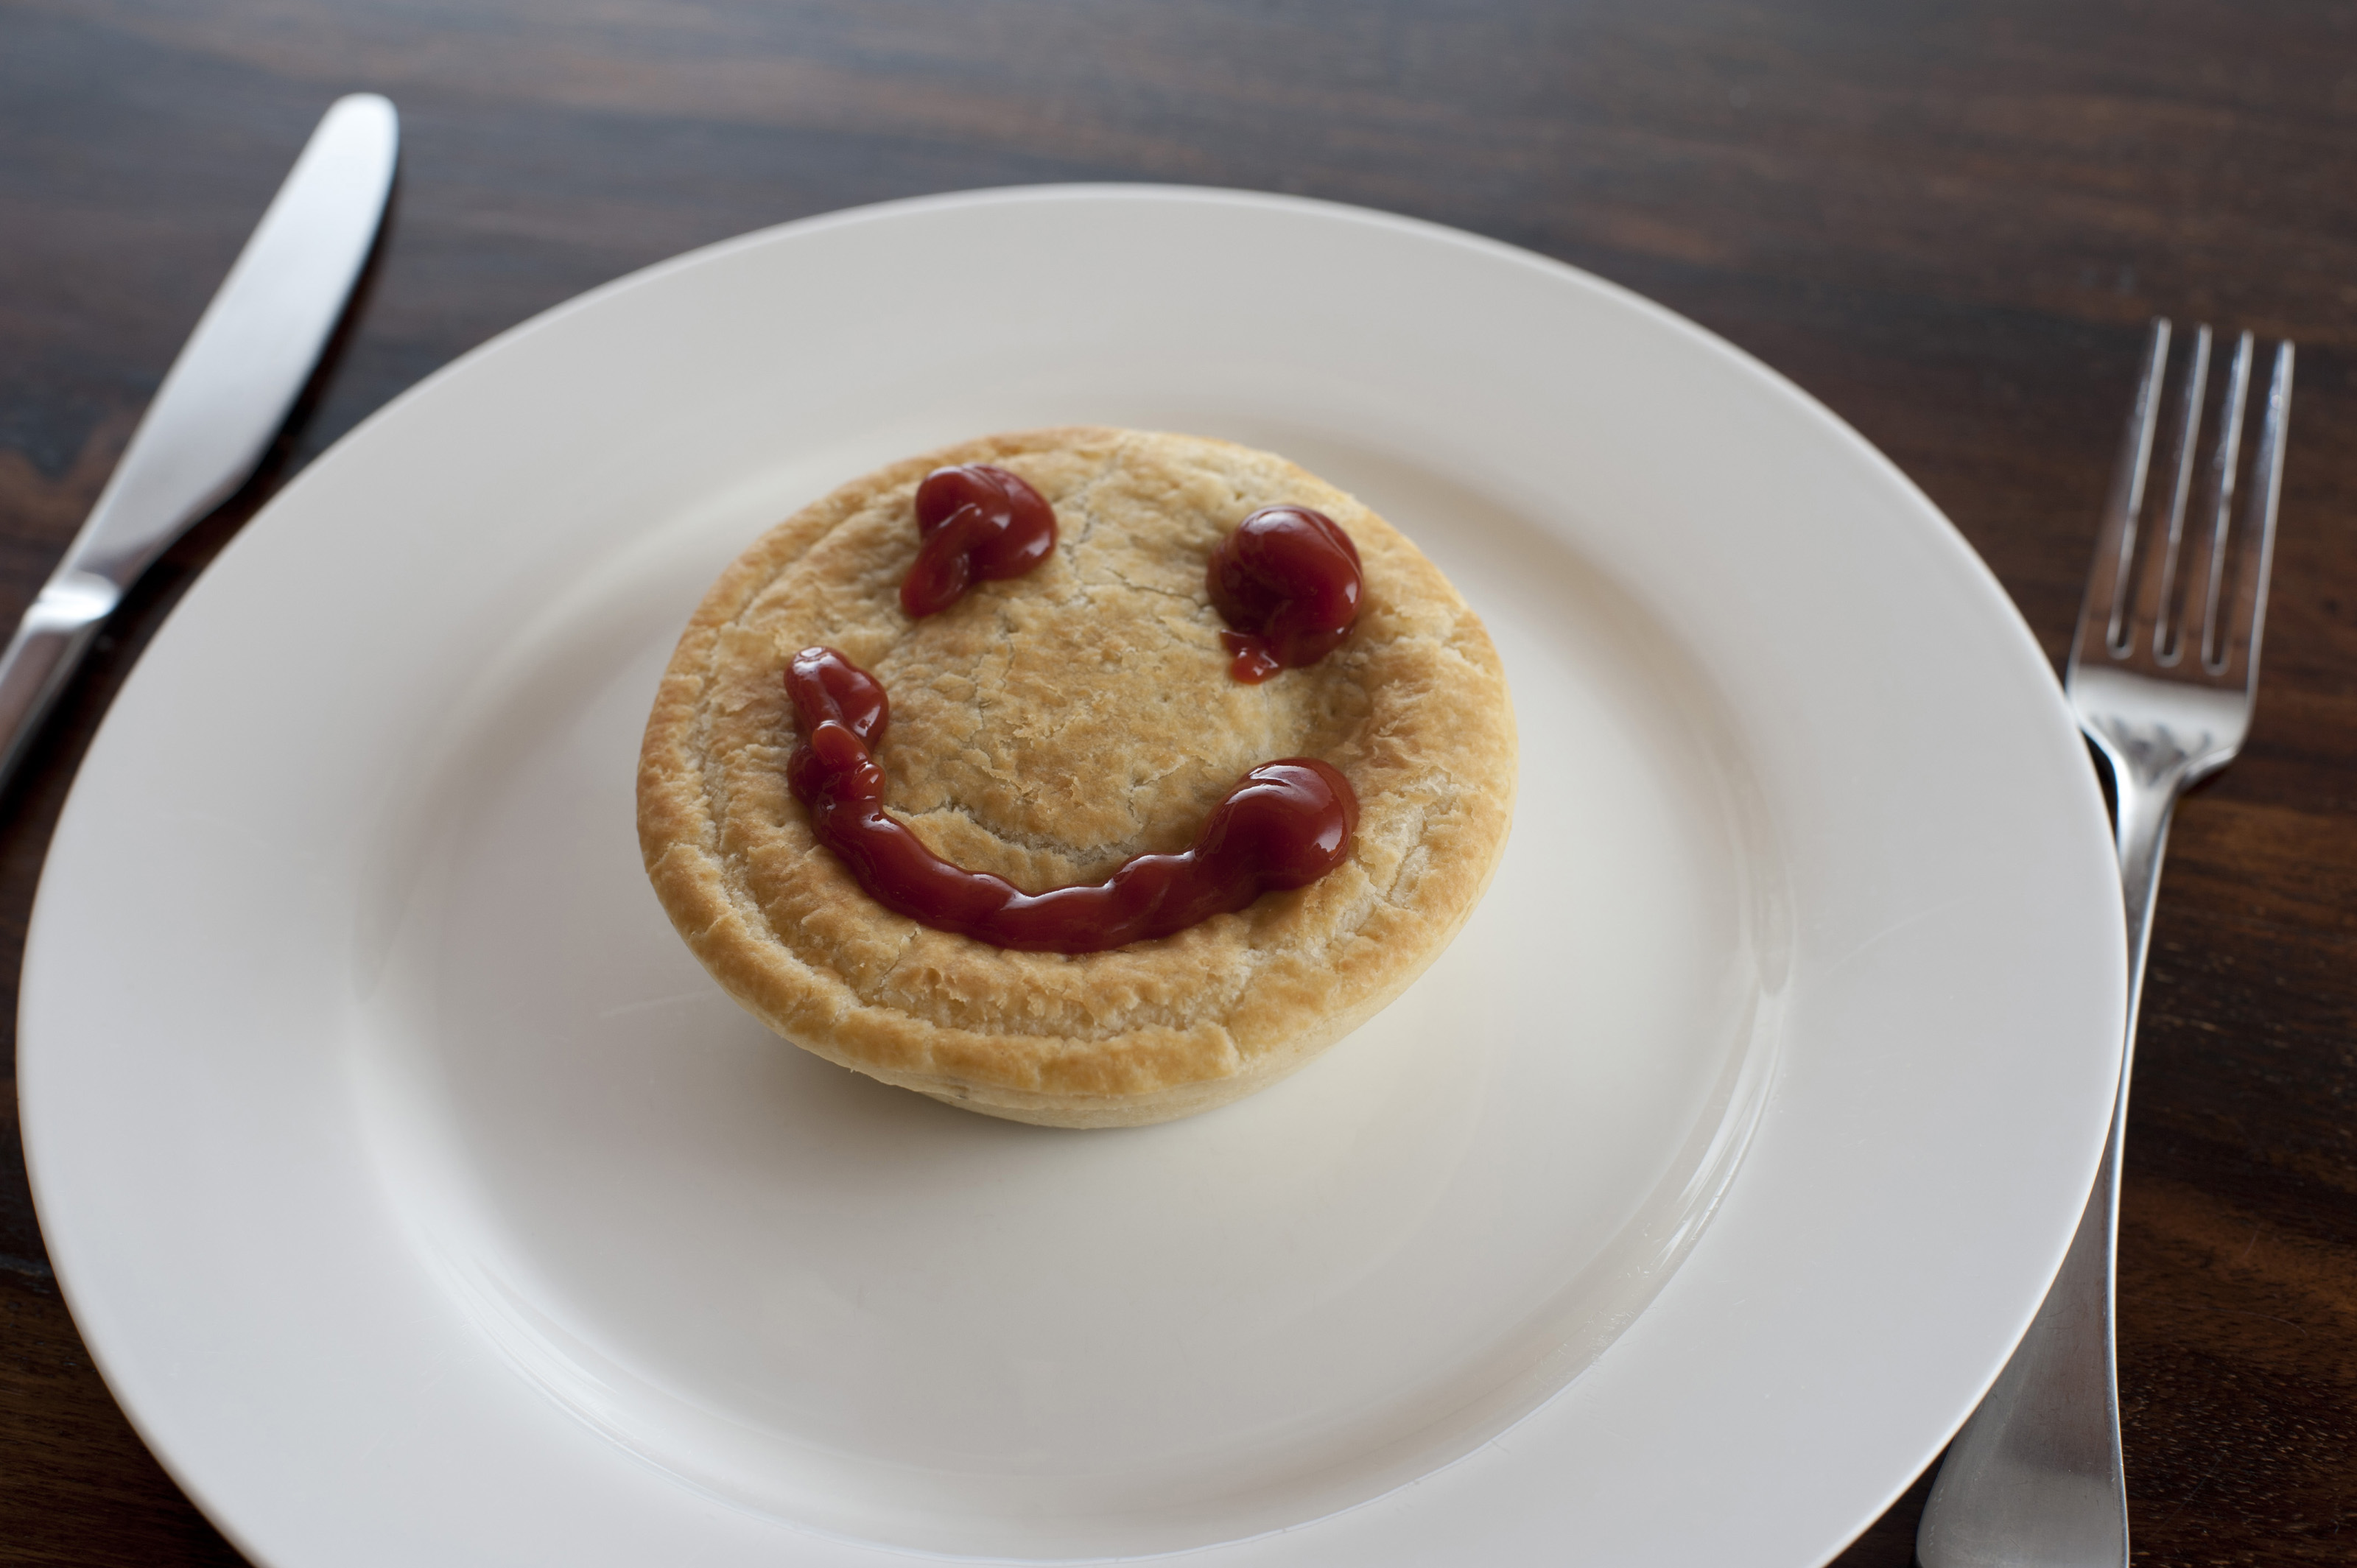 Meat pie with a smiley gravy face on the crusty pastry served on a plate for & Free Stock Photo 10488 Meat pie with a smiley gravy face ...